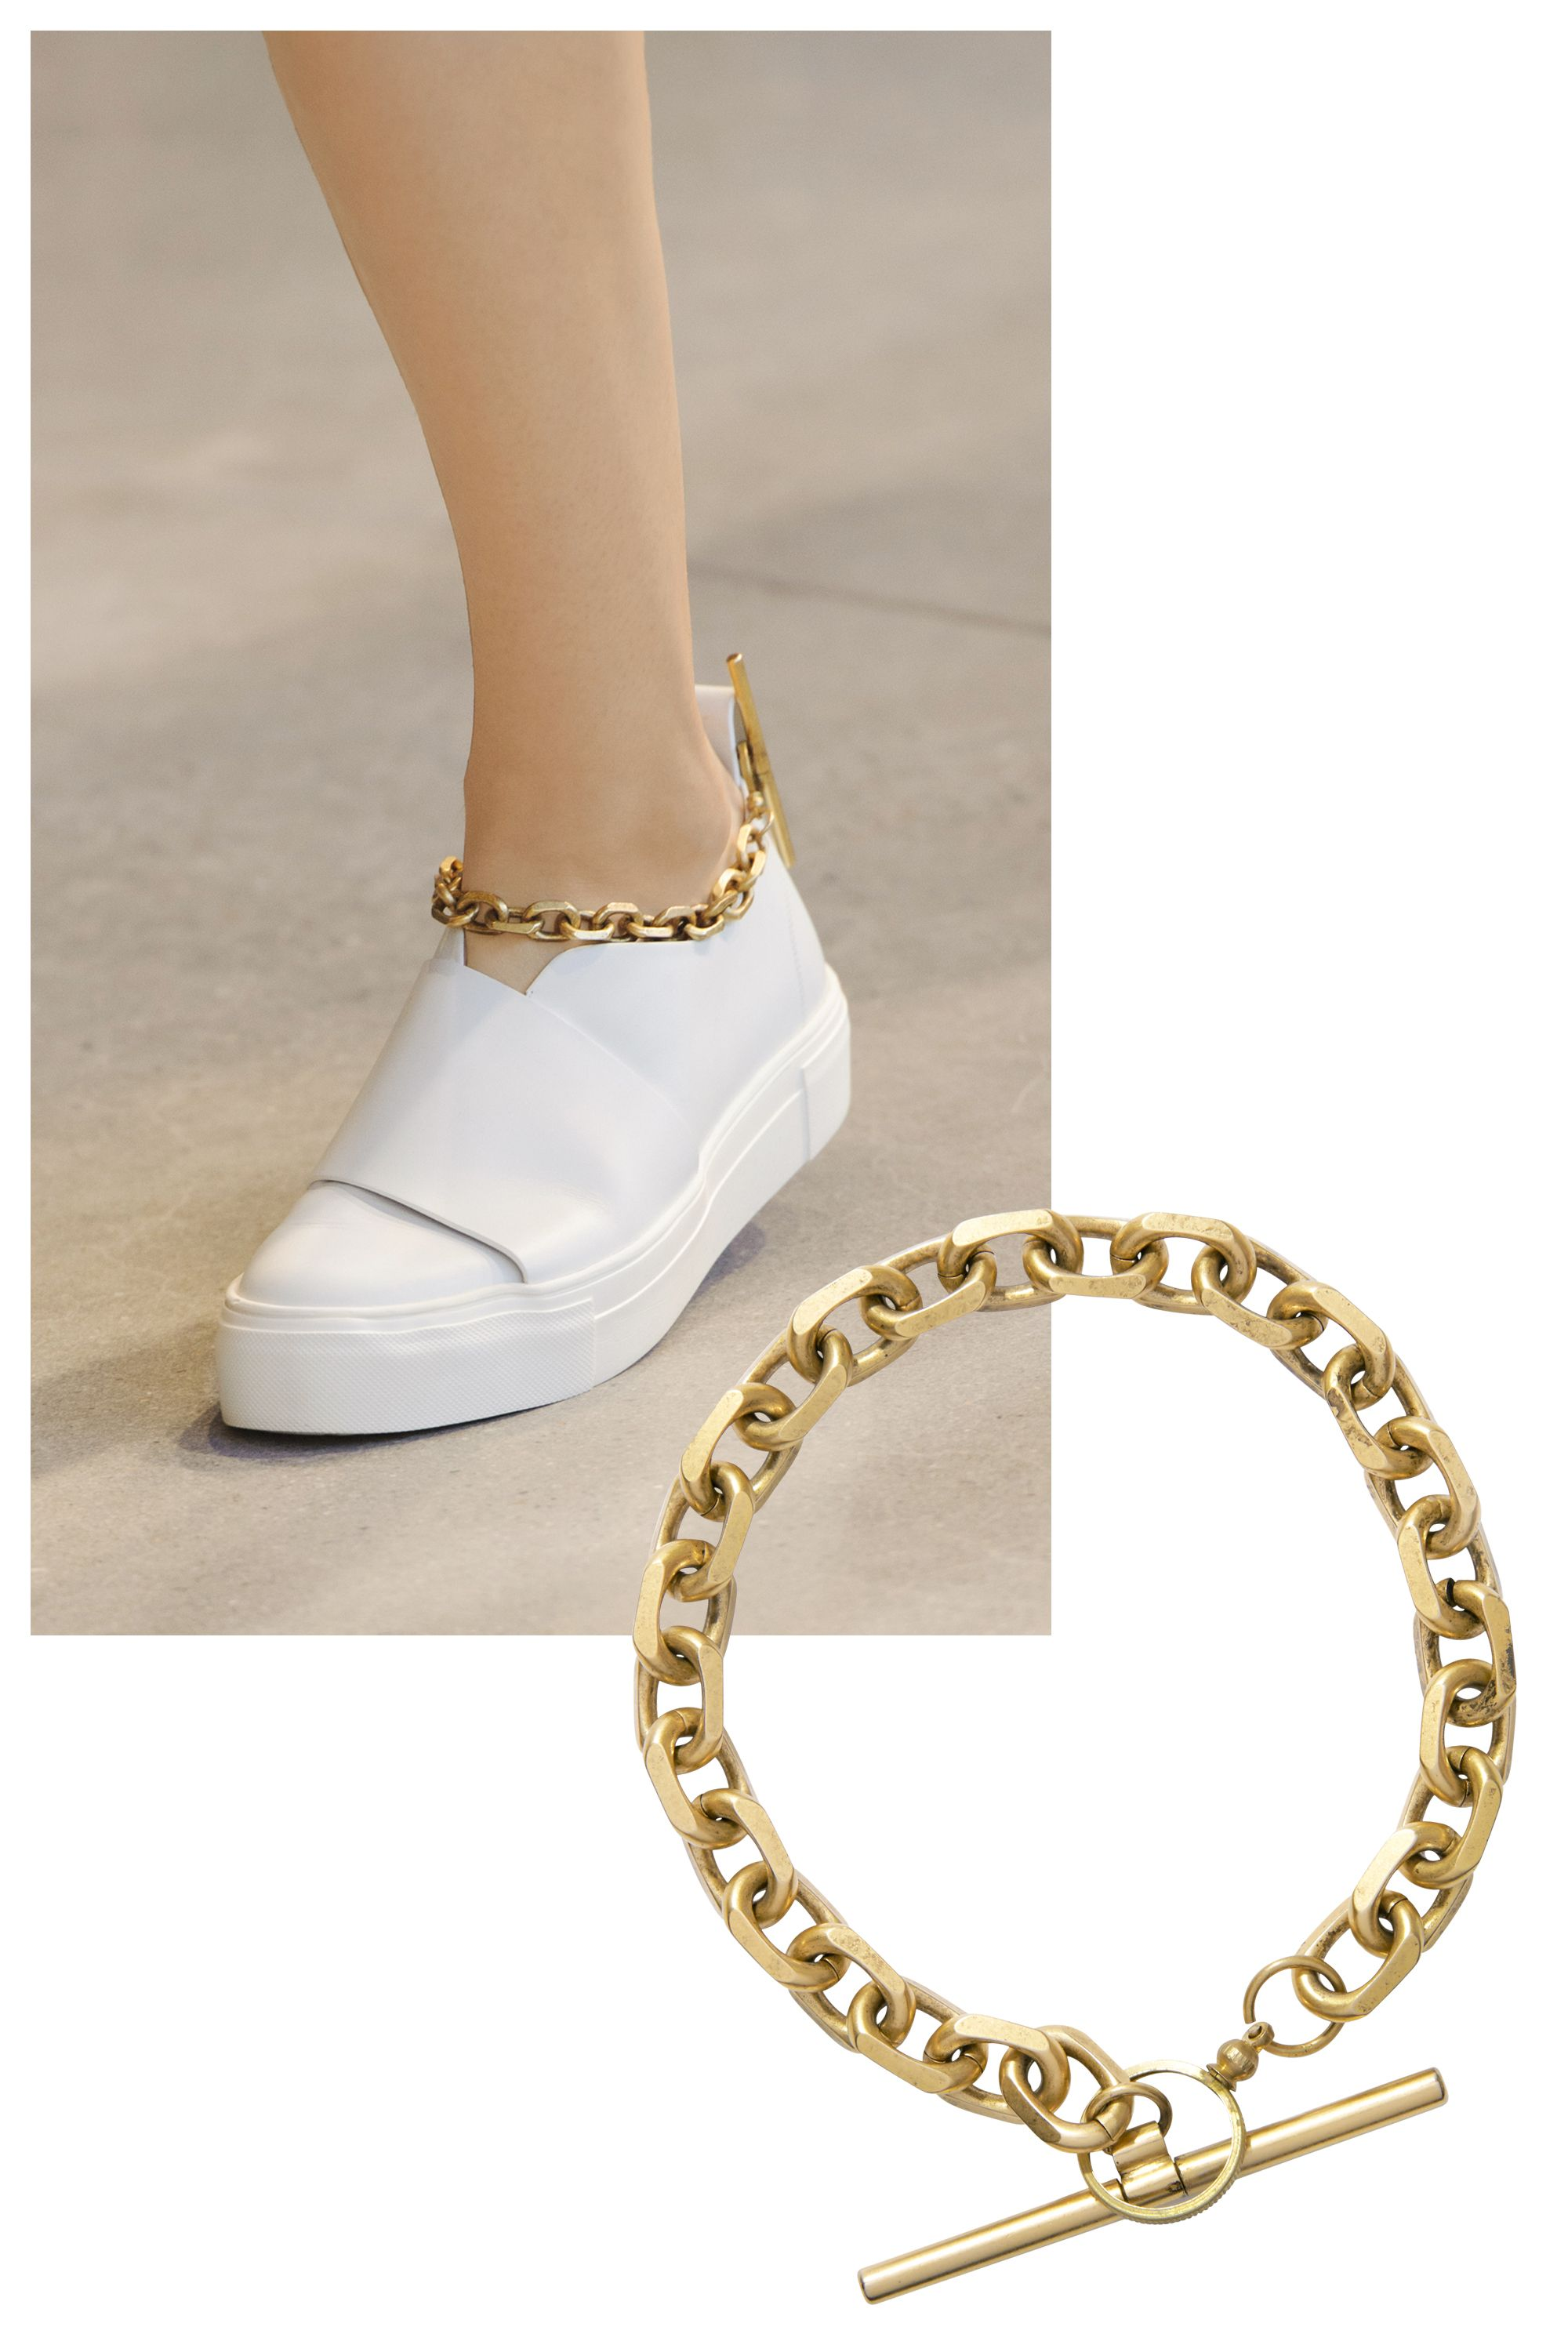 <p>Calvin Klein creative director Francisco Costa accessorized much of his collection with chunky gold-chain ankle bracelets that are bound to start a trend for spring. How's that for a Midas touch?</p><p><strong>Calvin Klein Collection</strong> anklet, price upon request, 212-292-9000.<br></p>